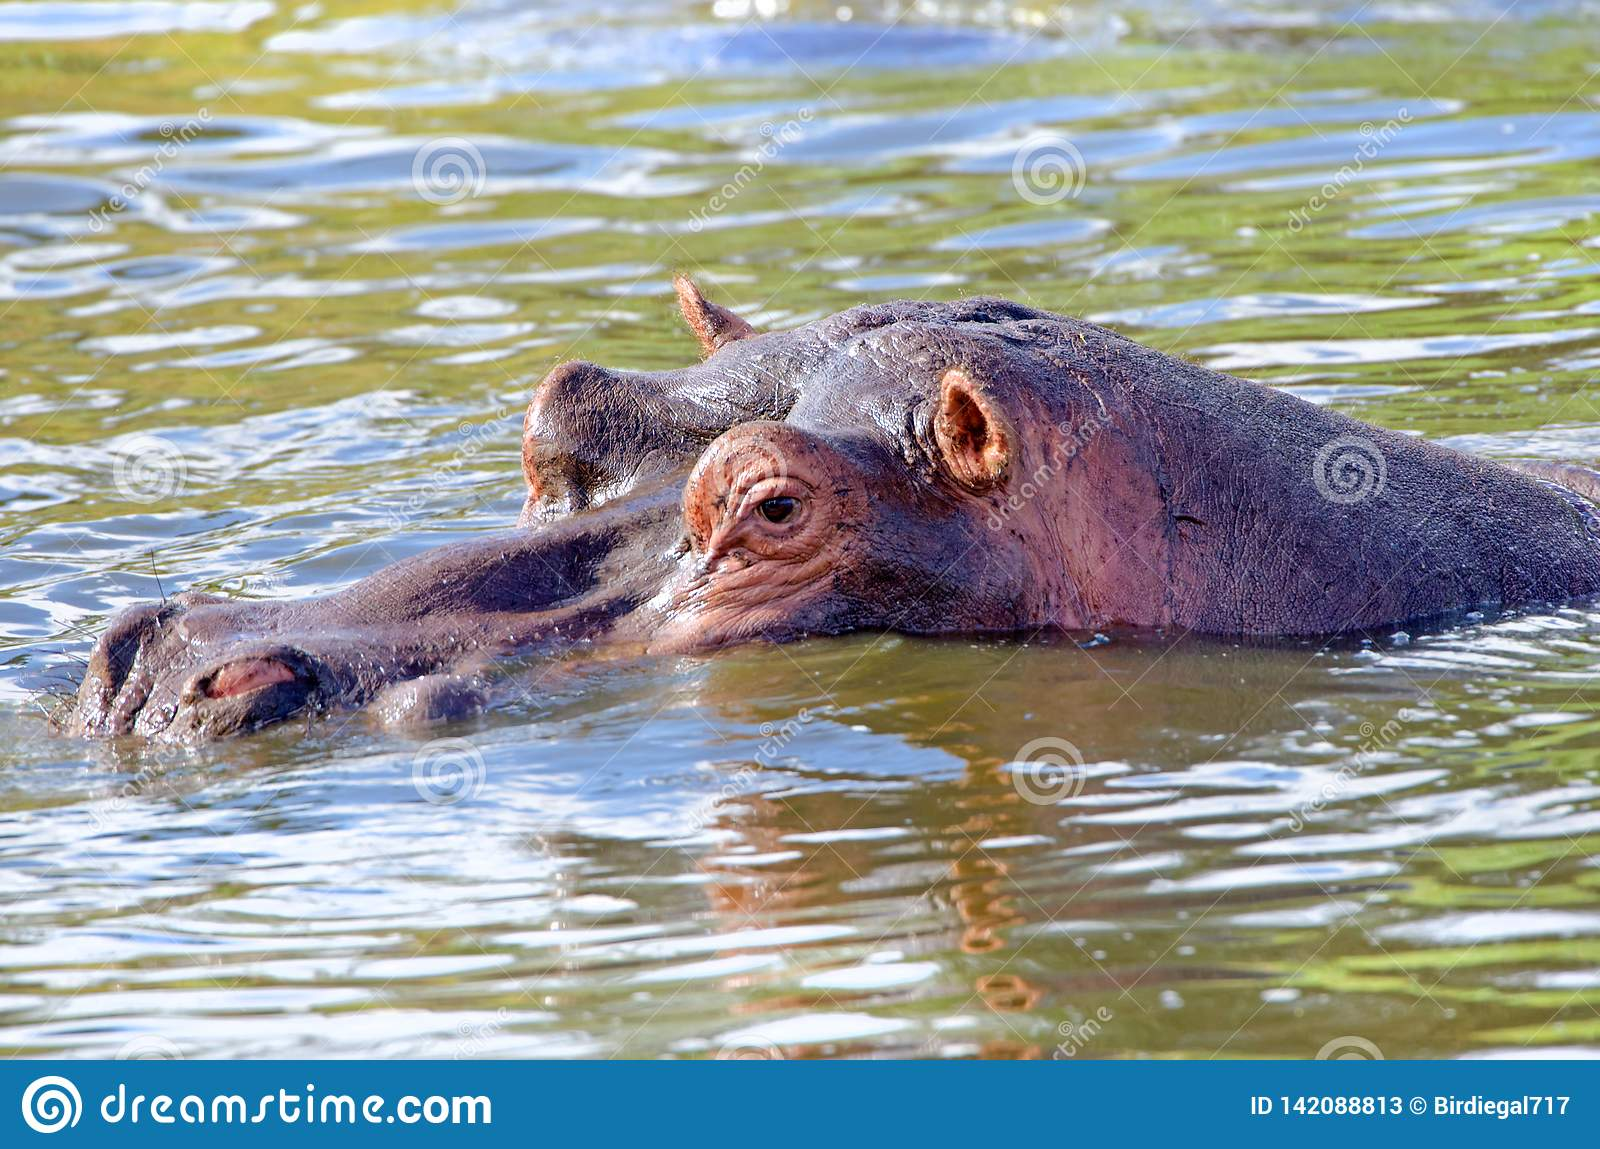 Hippopotamus, Hippo half submerged. Kruger National Park, South Africa